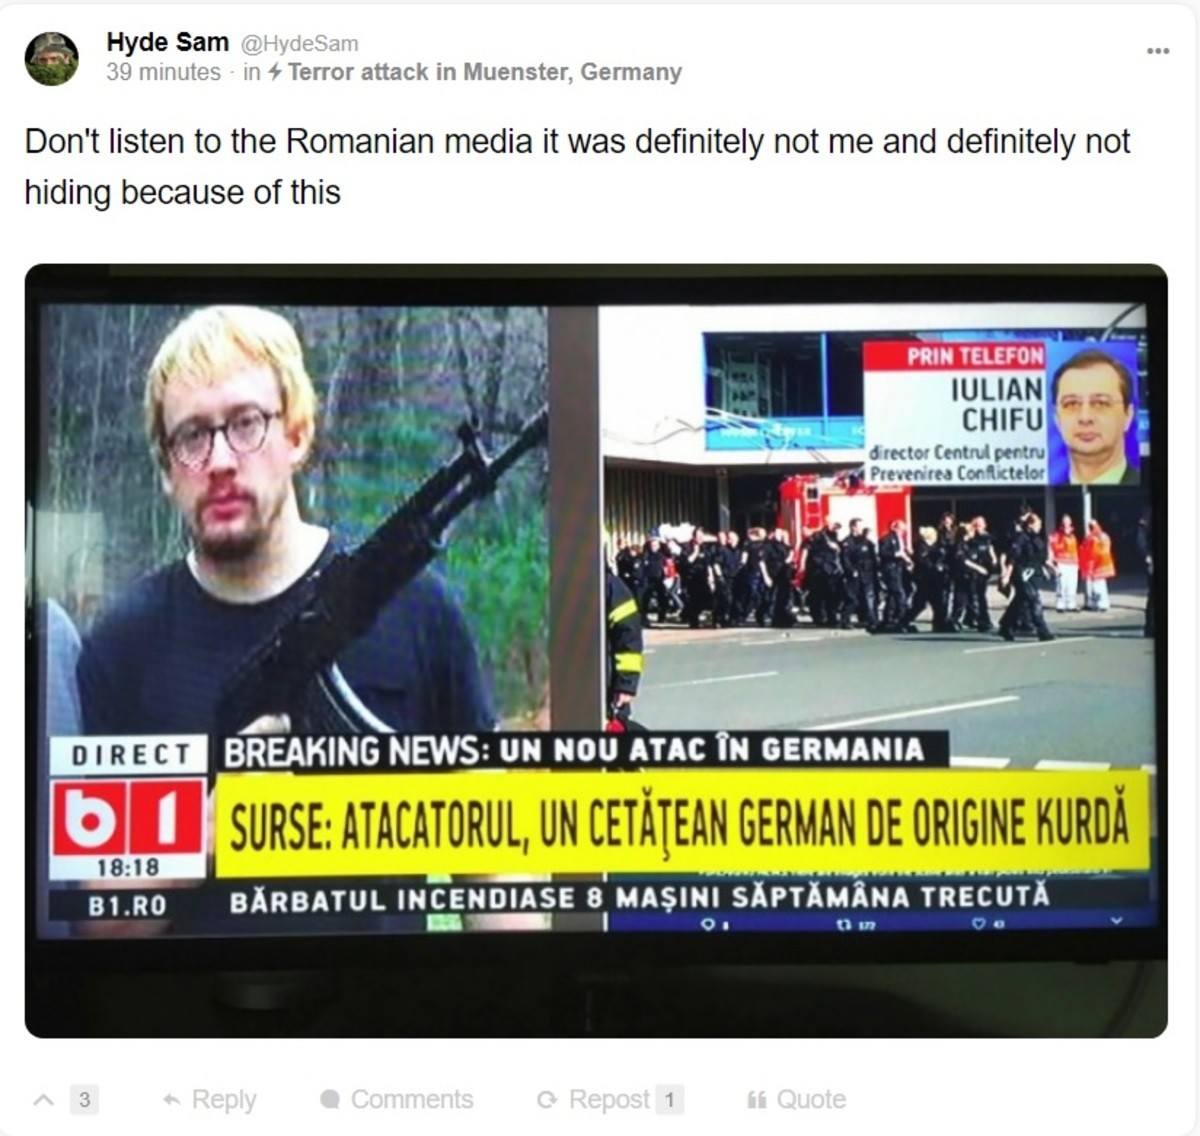 Every. Single. Time.. . Hyde Sam lillie i ' 39 miinutes - in L' Terror attack in Muenster, Germany Don' t listen to the Romanian media it was ' not me and '' hi